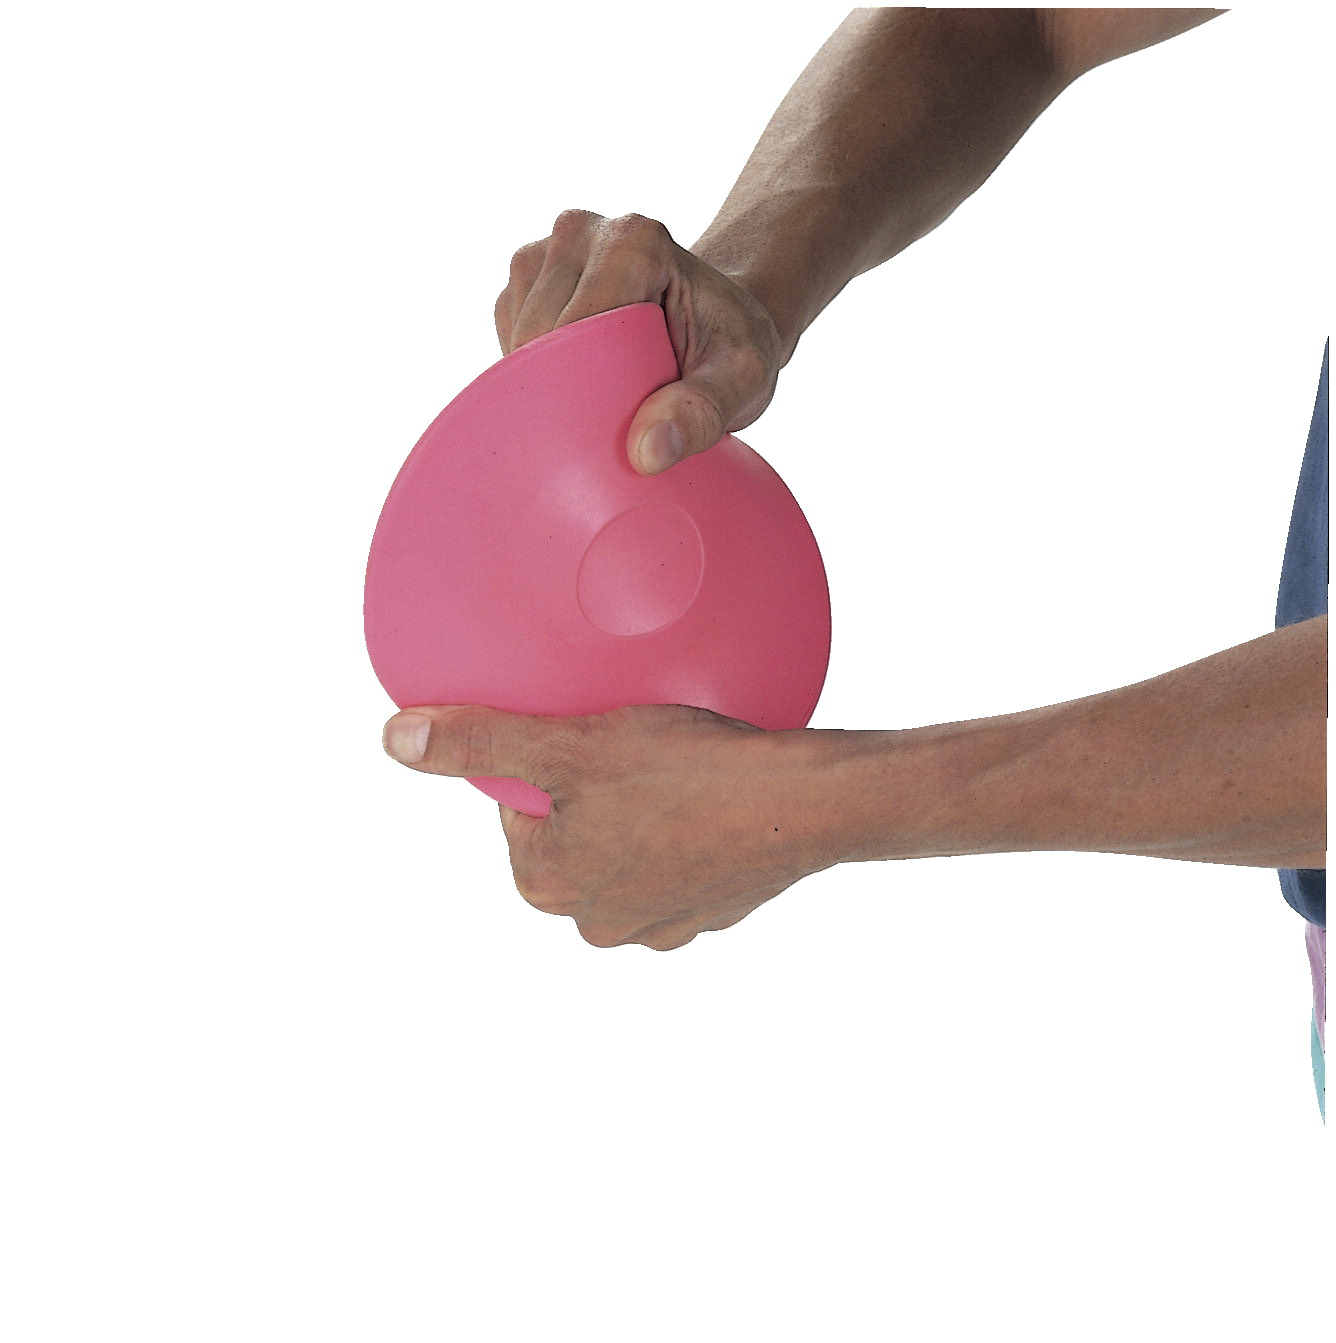 Sportime Beginner Discus, Thermoplastic, 1 Pound, 7 Inches, Pink